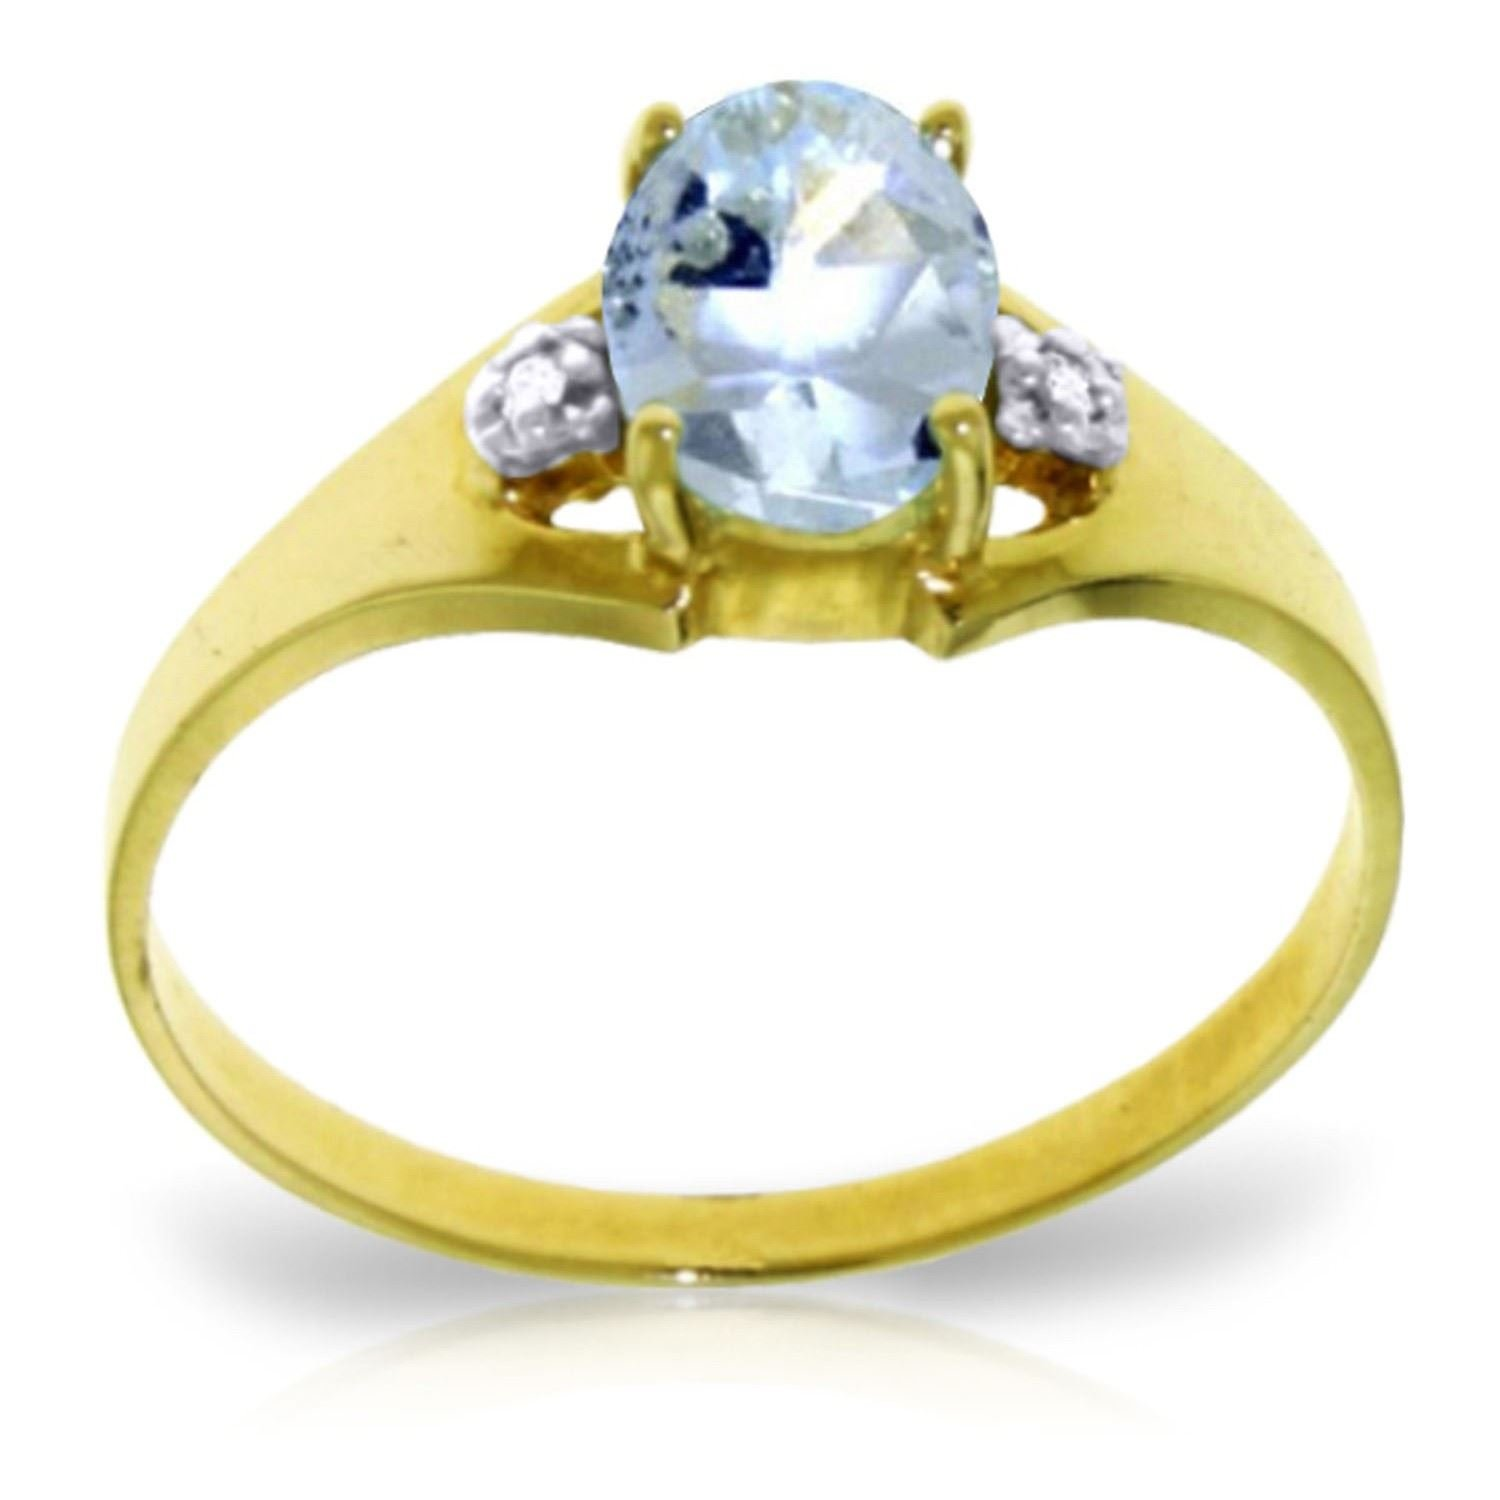 ALARRI 0.76 Carat 14K Solid Gold Permitted To Love Aquamarine Diamond Ring With Ring Size 8.5